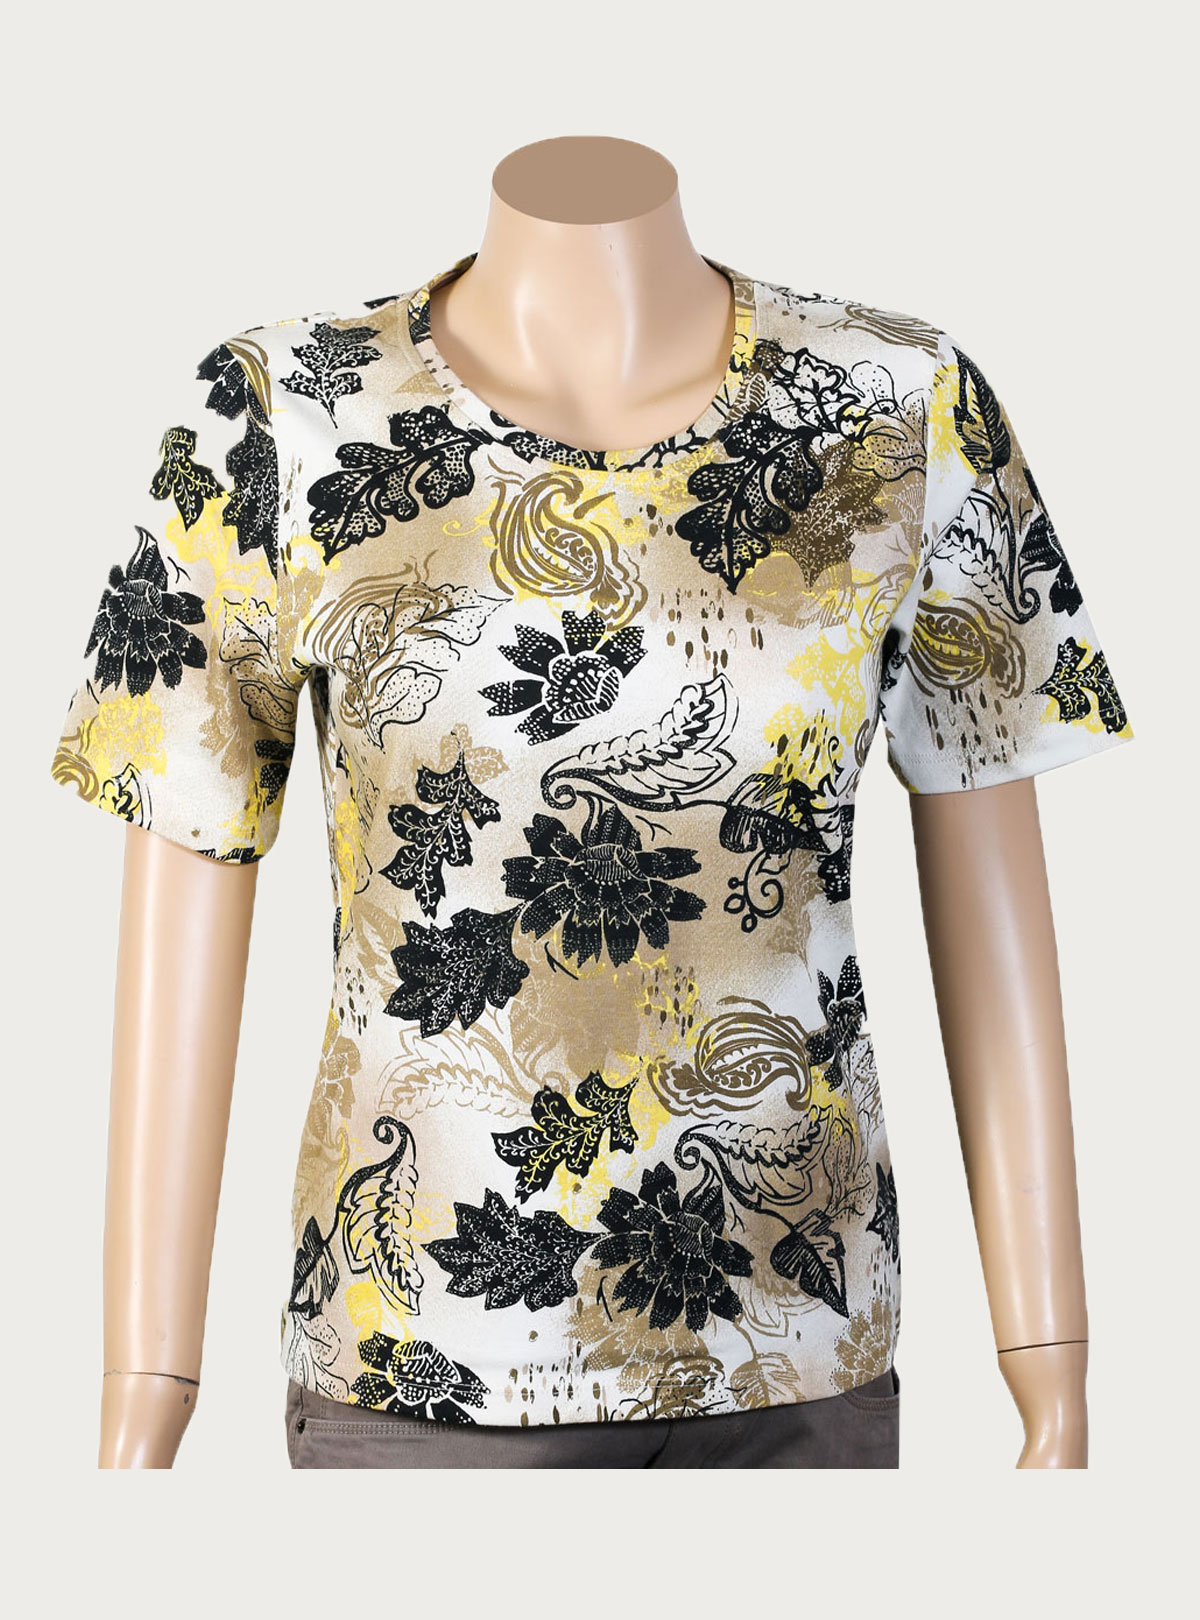 STYLISH SHIRTS &TOPS